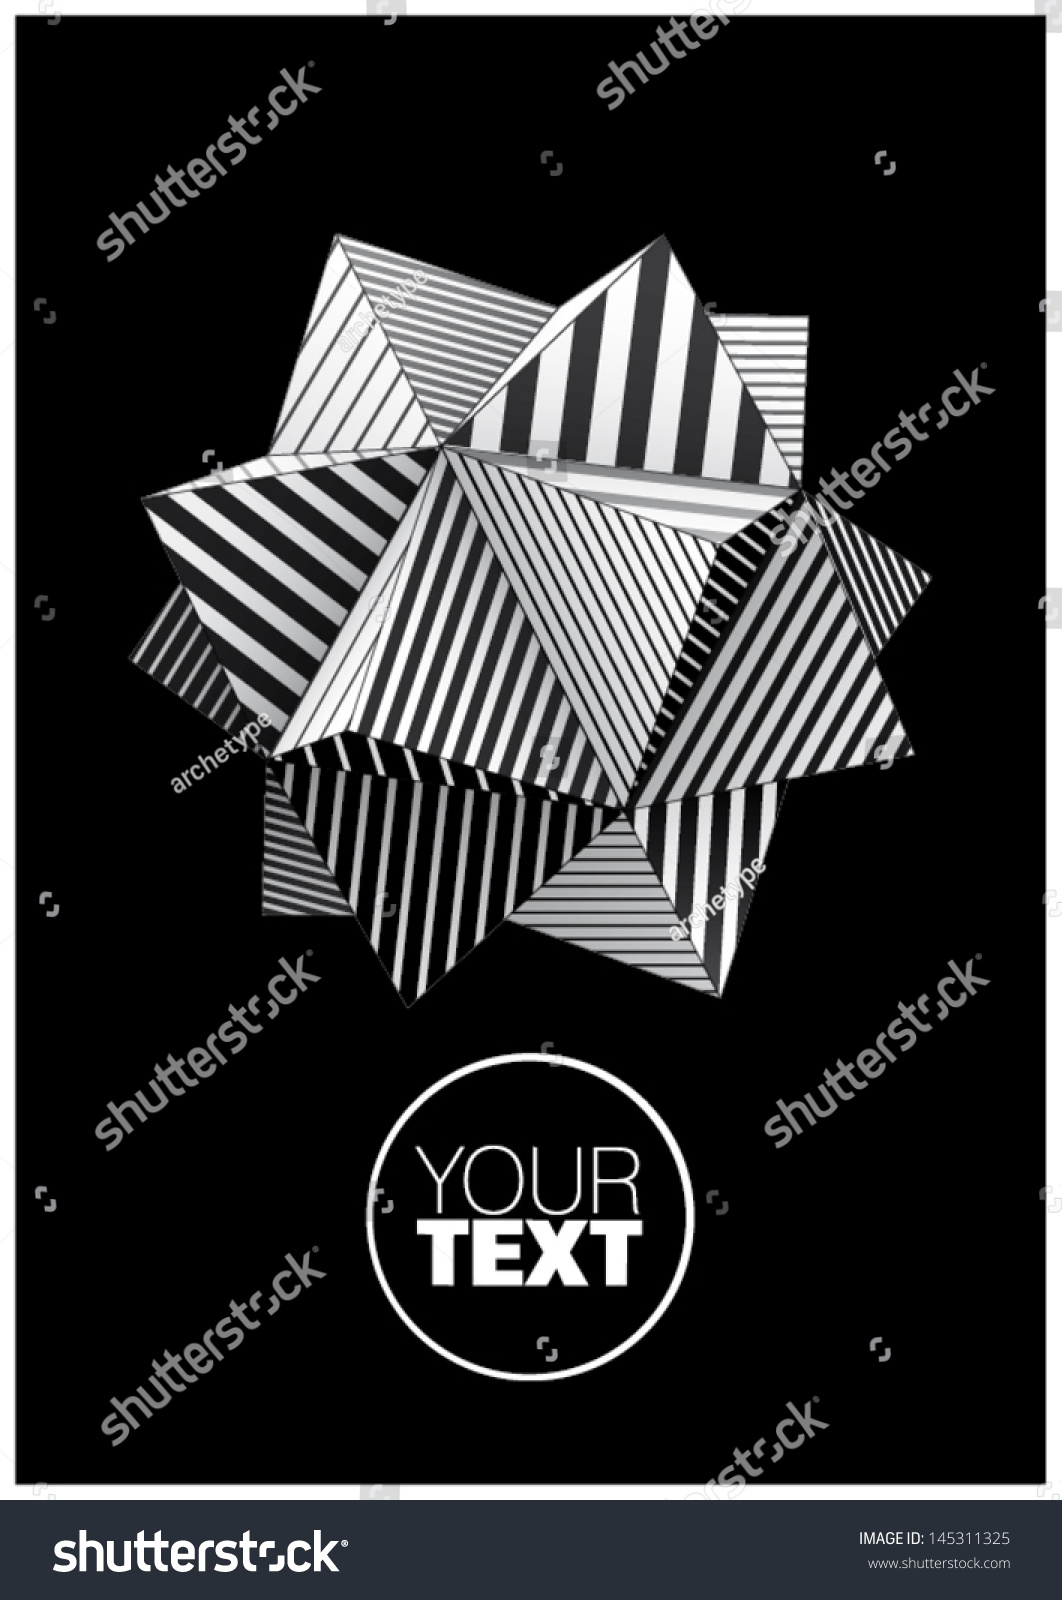 Polyhedron Black White Striped Faces Poster Stock Vector